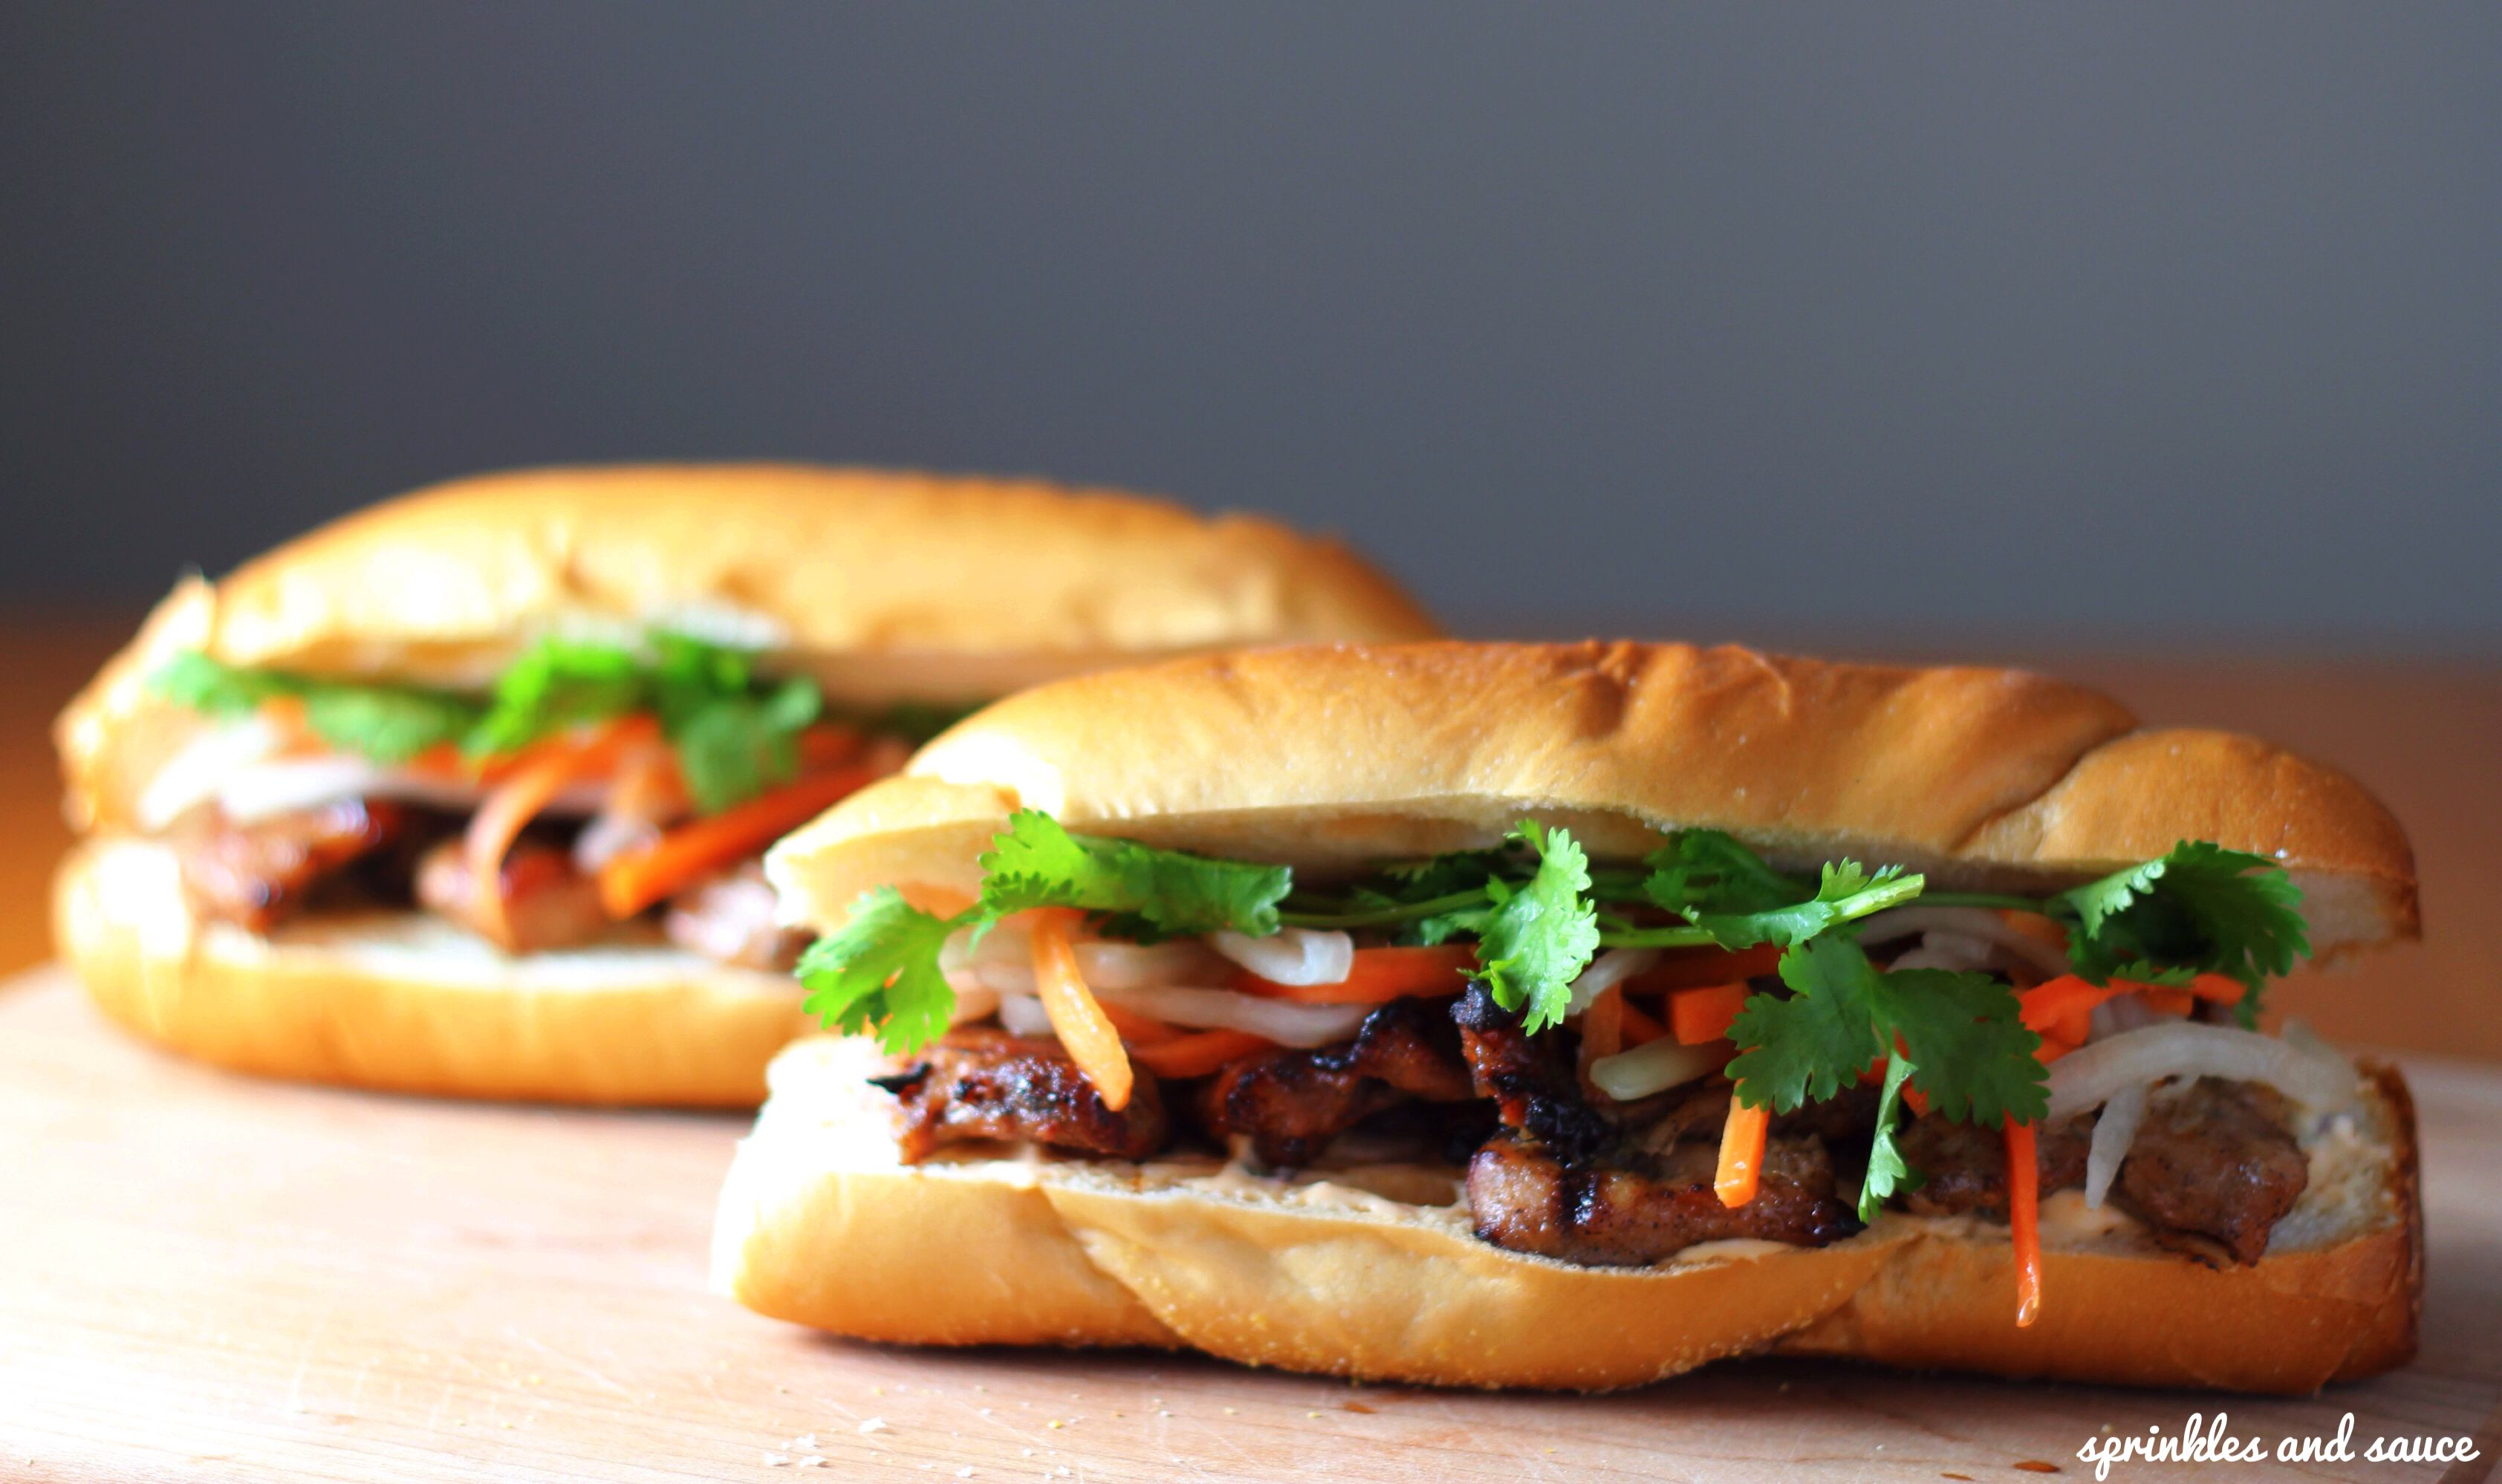 Lemongrass-pork Banh Mi